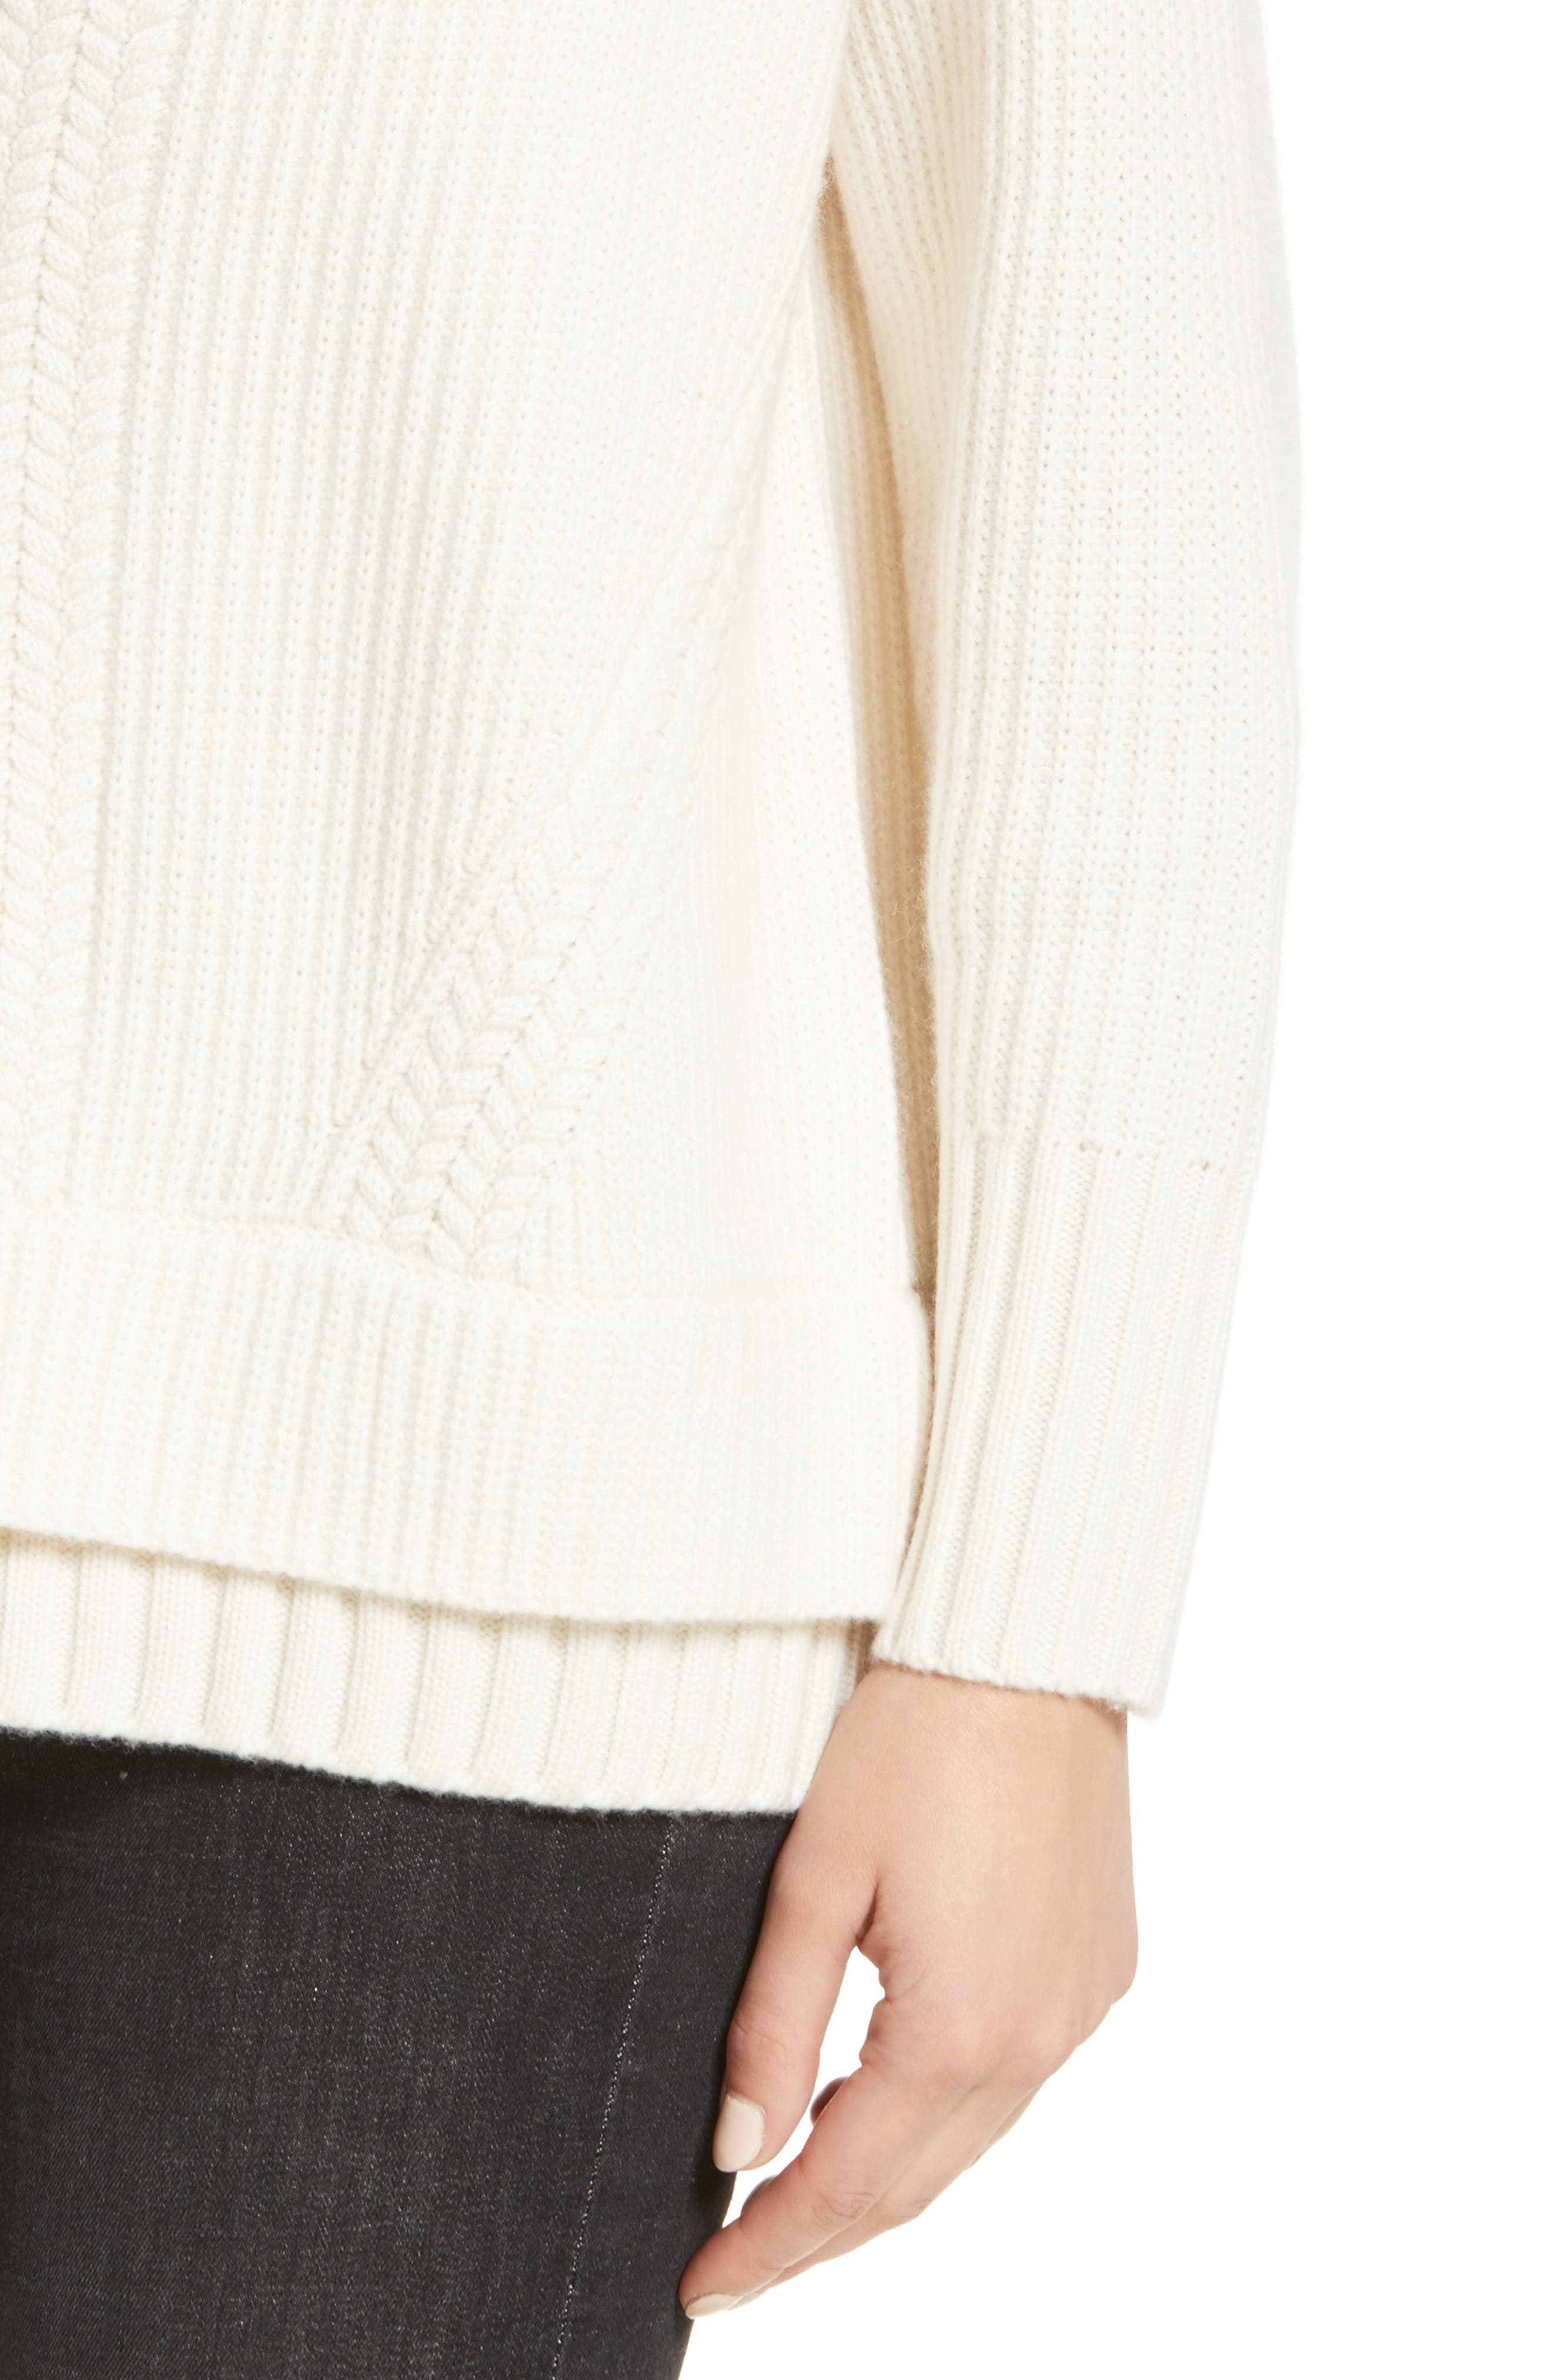 Santerno Wool & Cashmere Cable Knit Sweater,                             Alternate thumbnail 4, color,                             103